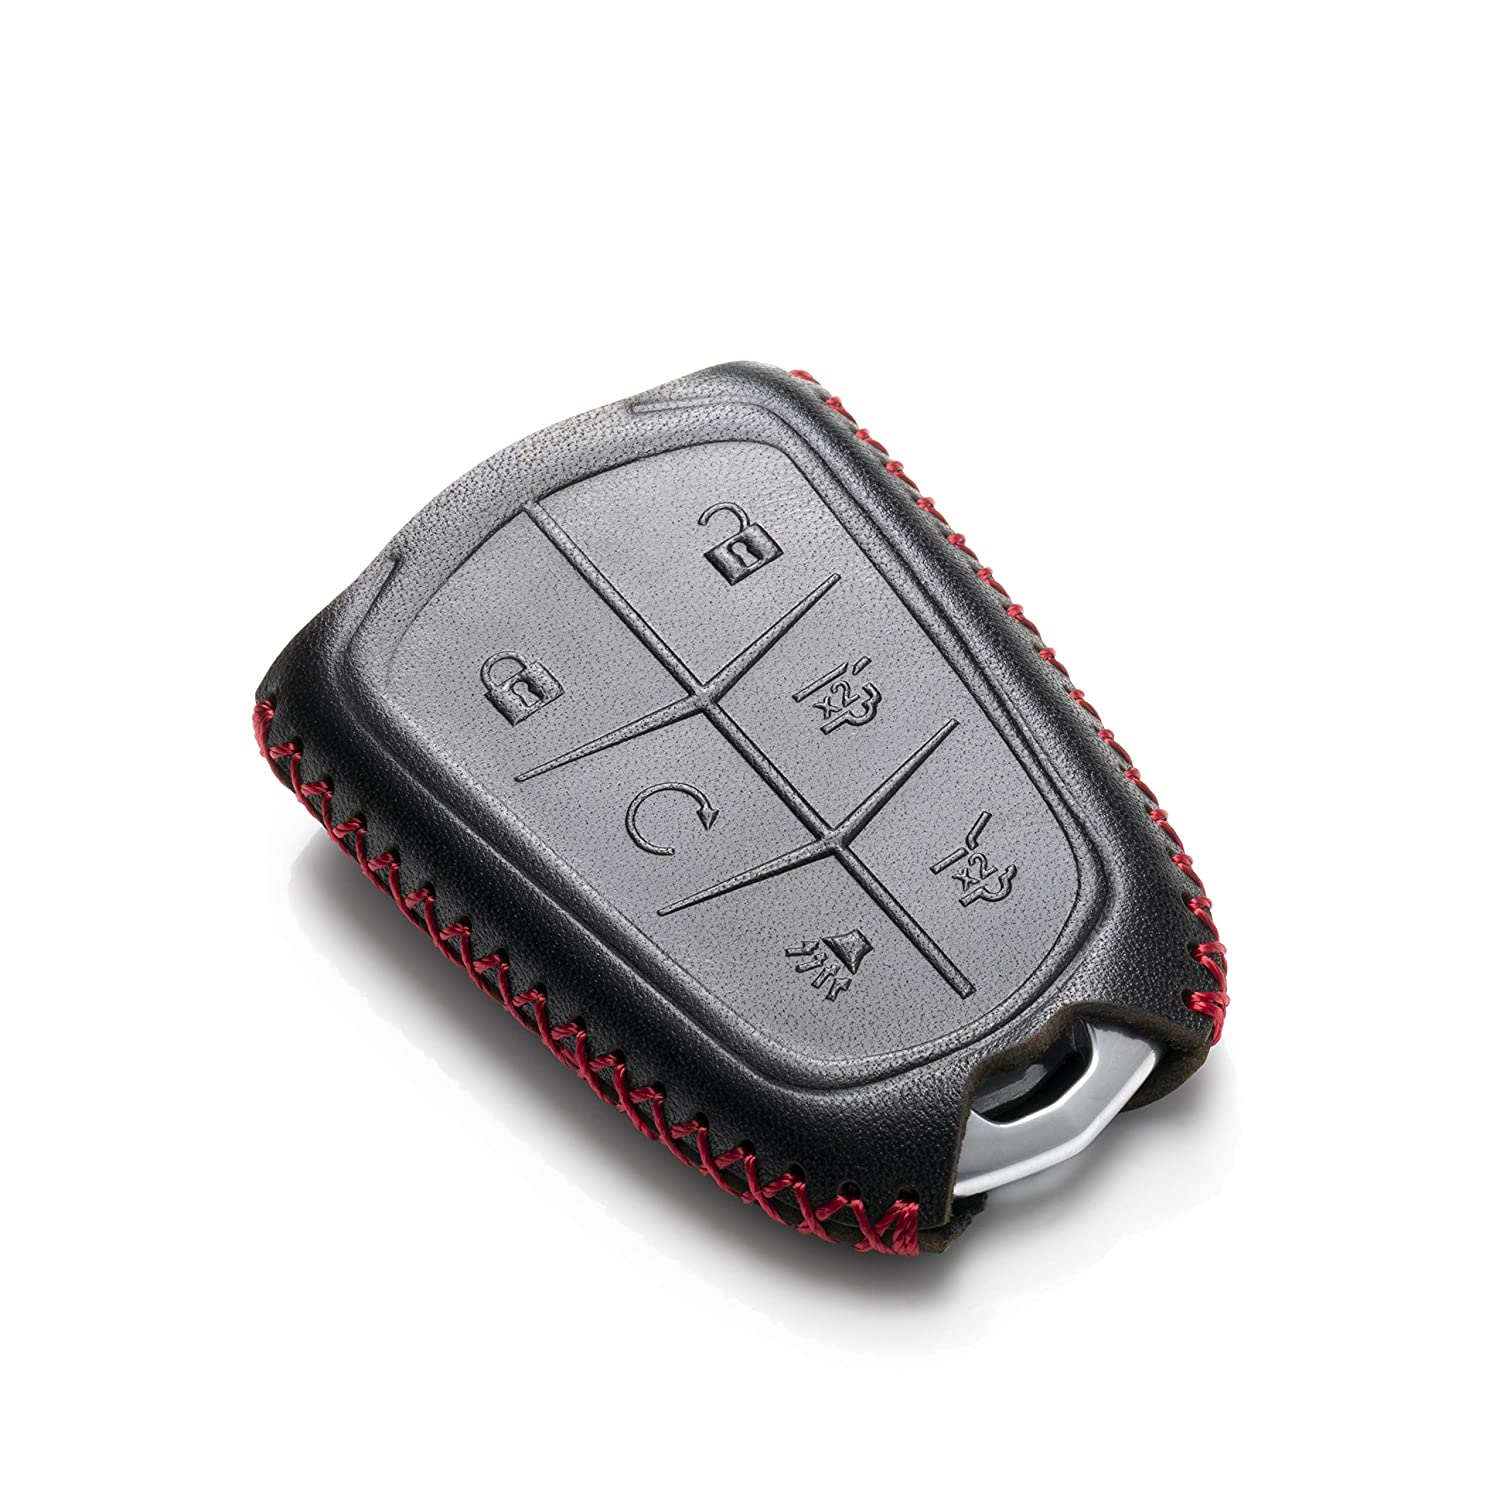 Escalade ESV 6 Buttons, Black Vitodeco Genuine Leather Smart Key Keyless Remote Entry Fob Case Cover with Key Chain for 2015-2019 Cadillac Escalade